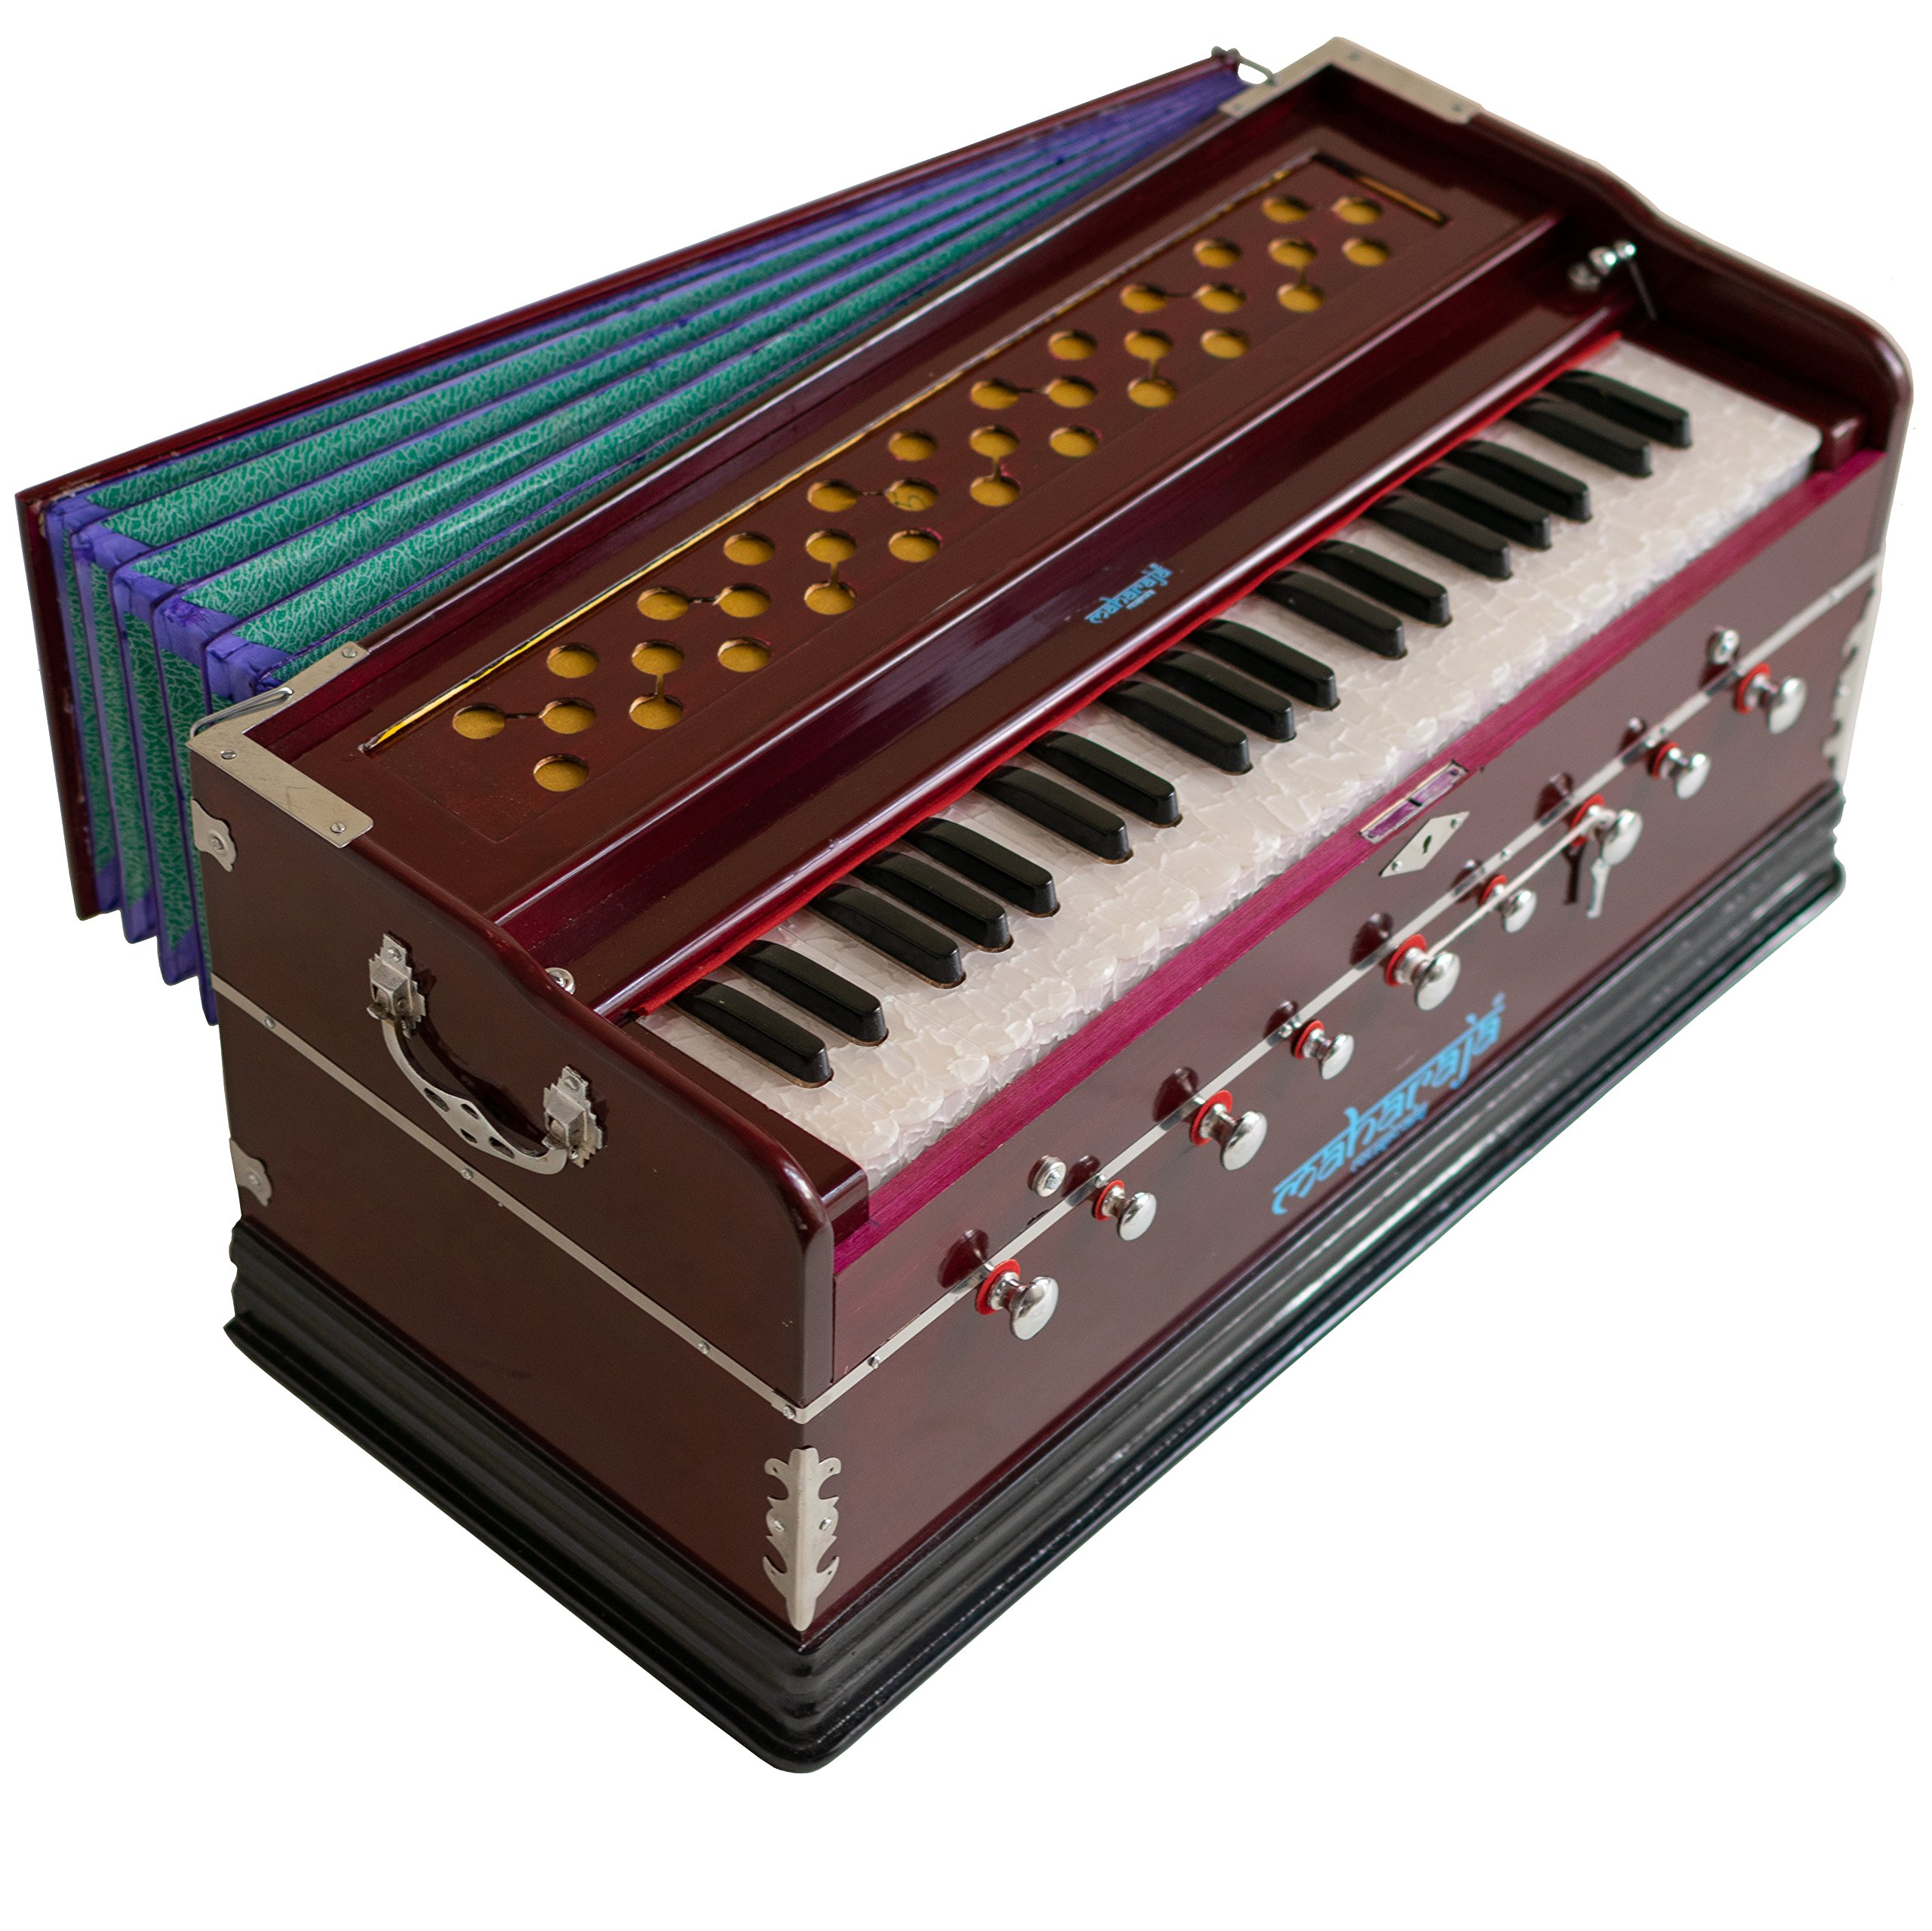 Harmonium Musical Instrument, Maharaja Musicals, In USA, 9 Stops, 3 1/2 Octave, Double Reed, Coupler, Dark Mahogany, Standard, Book, Padded Bag, A440 Tuned, Harmonium Indian Sangeeta (PDI-DC)